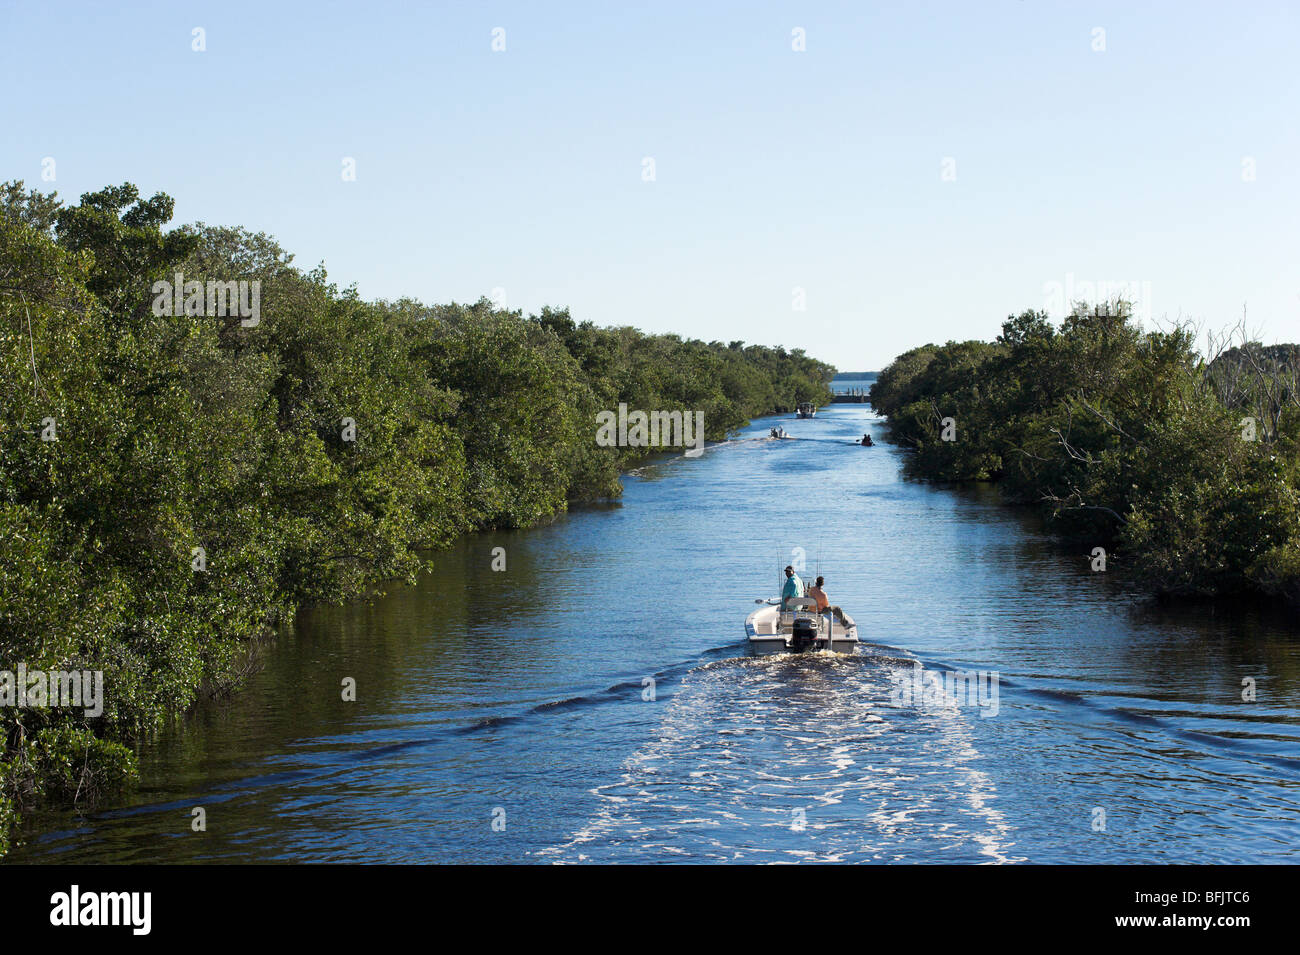 Boaters on the Buttonwood Canal near Flamingo, Everglades National Park, Florida, USA - Stock Image